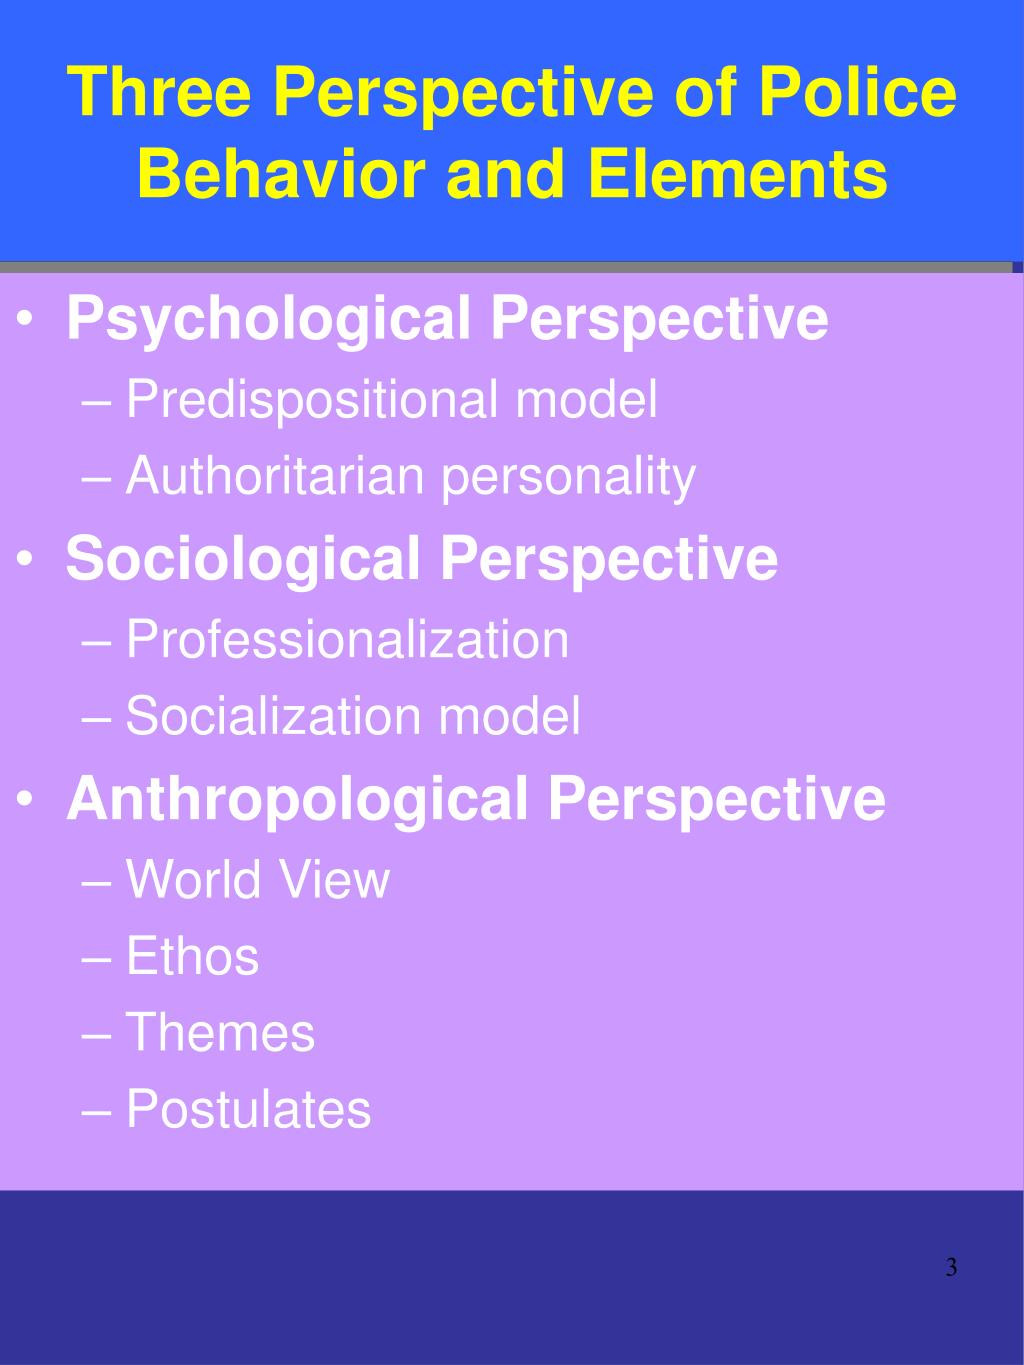 Three Perspective of Police Behavior and Elements